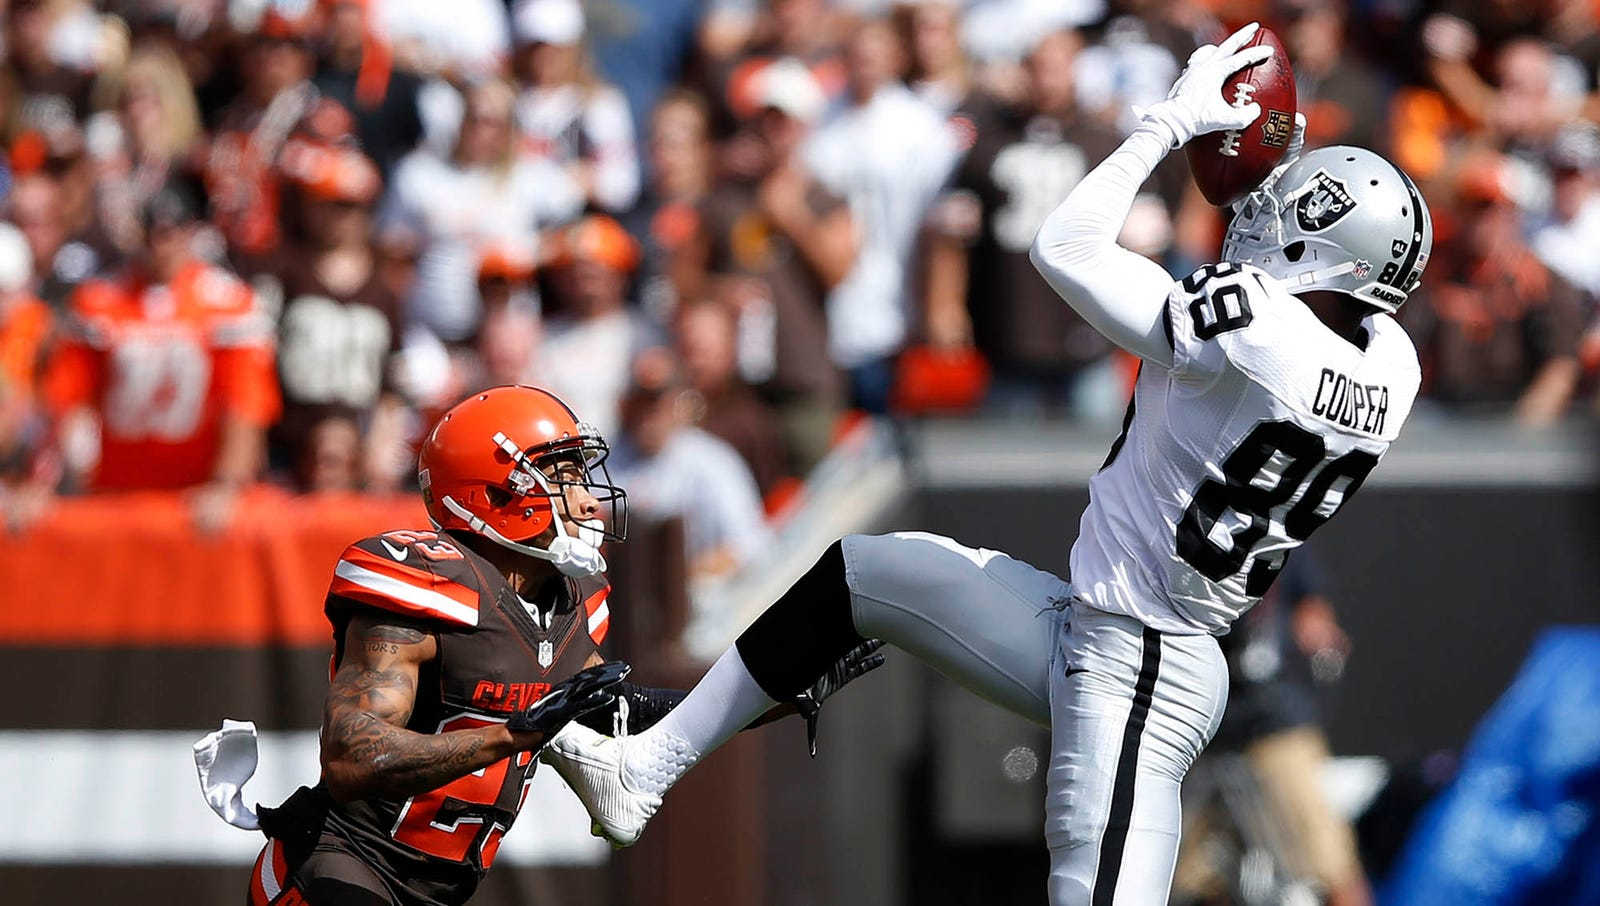 """""""The Catch"""": With 2:58 left in the first quarter of a week 3 game against the Cleveland Browns, Oakland Raiders quarterback Derek Carr successfully connected with rookie wide receiver Amari Cooper for a 9-yard gain, turning second-and-15 into a manageable third-and-6."""